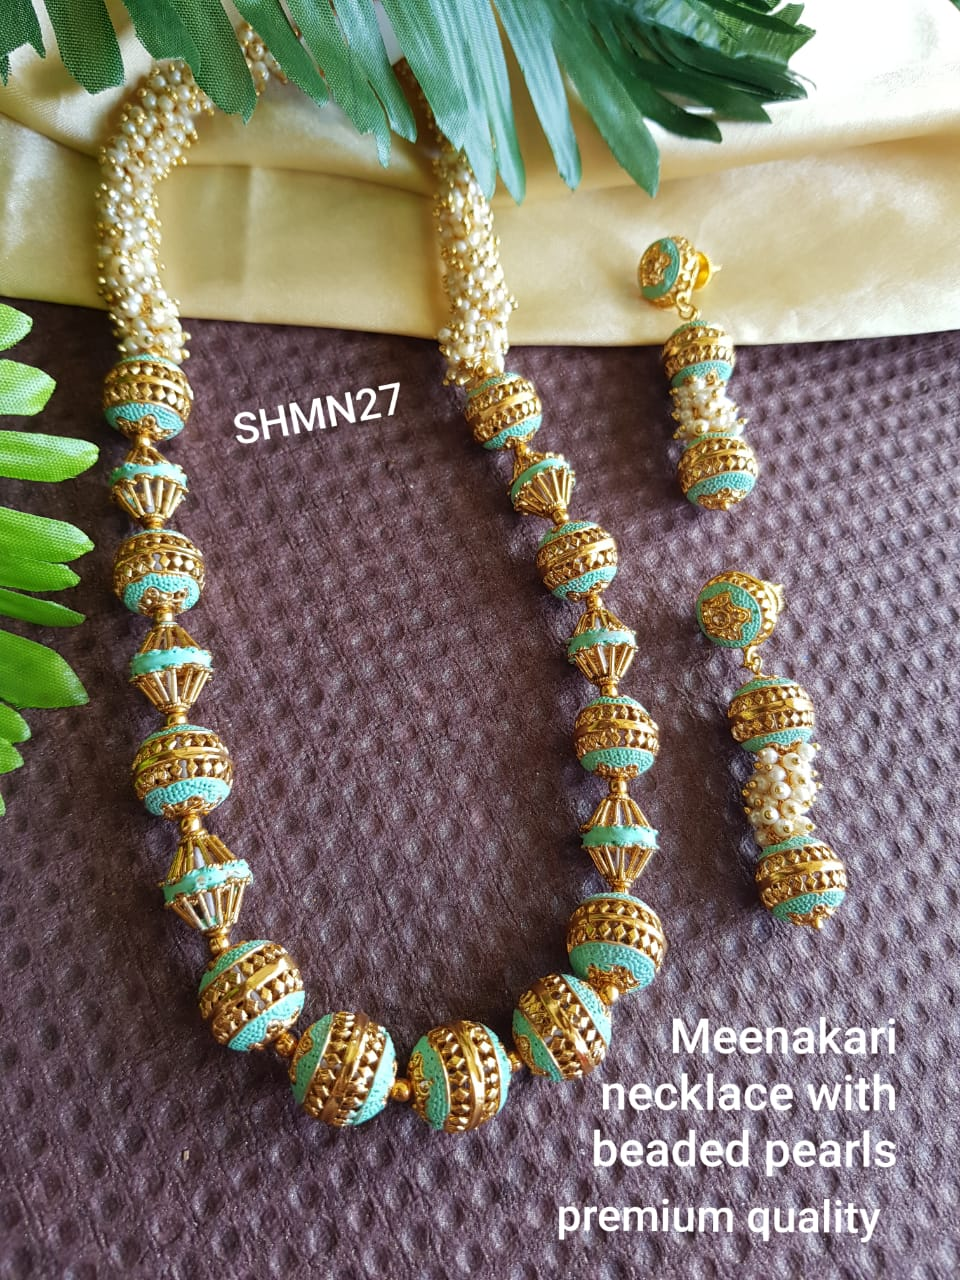 Meenakari Necklace with Beaded Pearls and Earrings